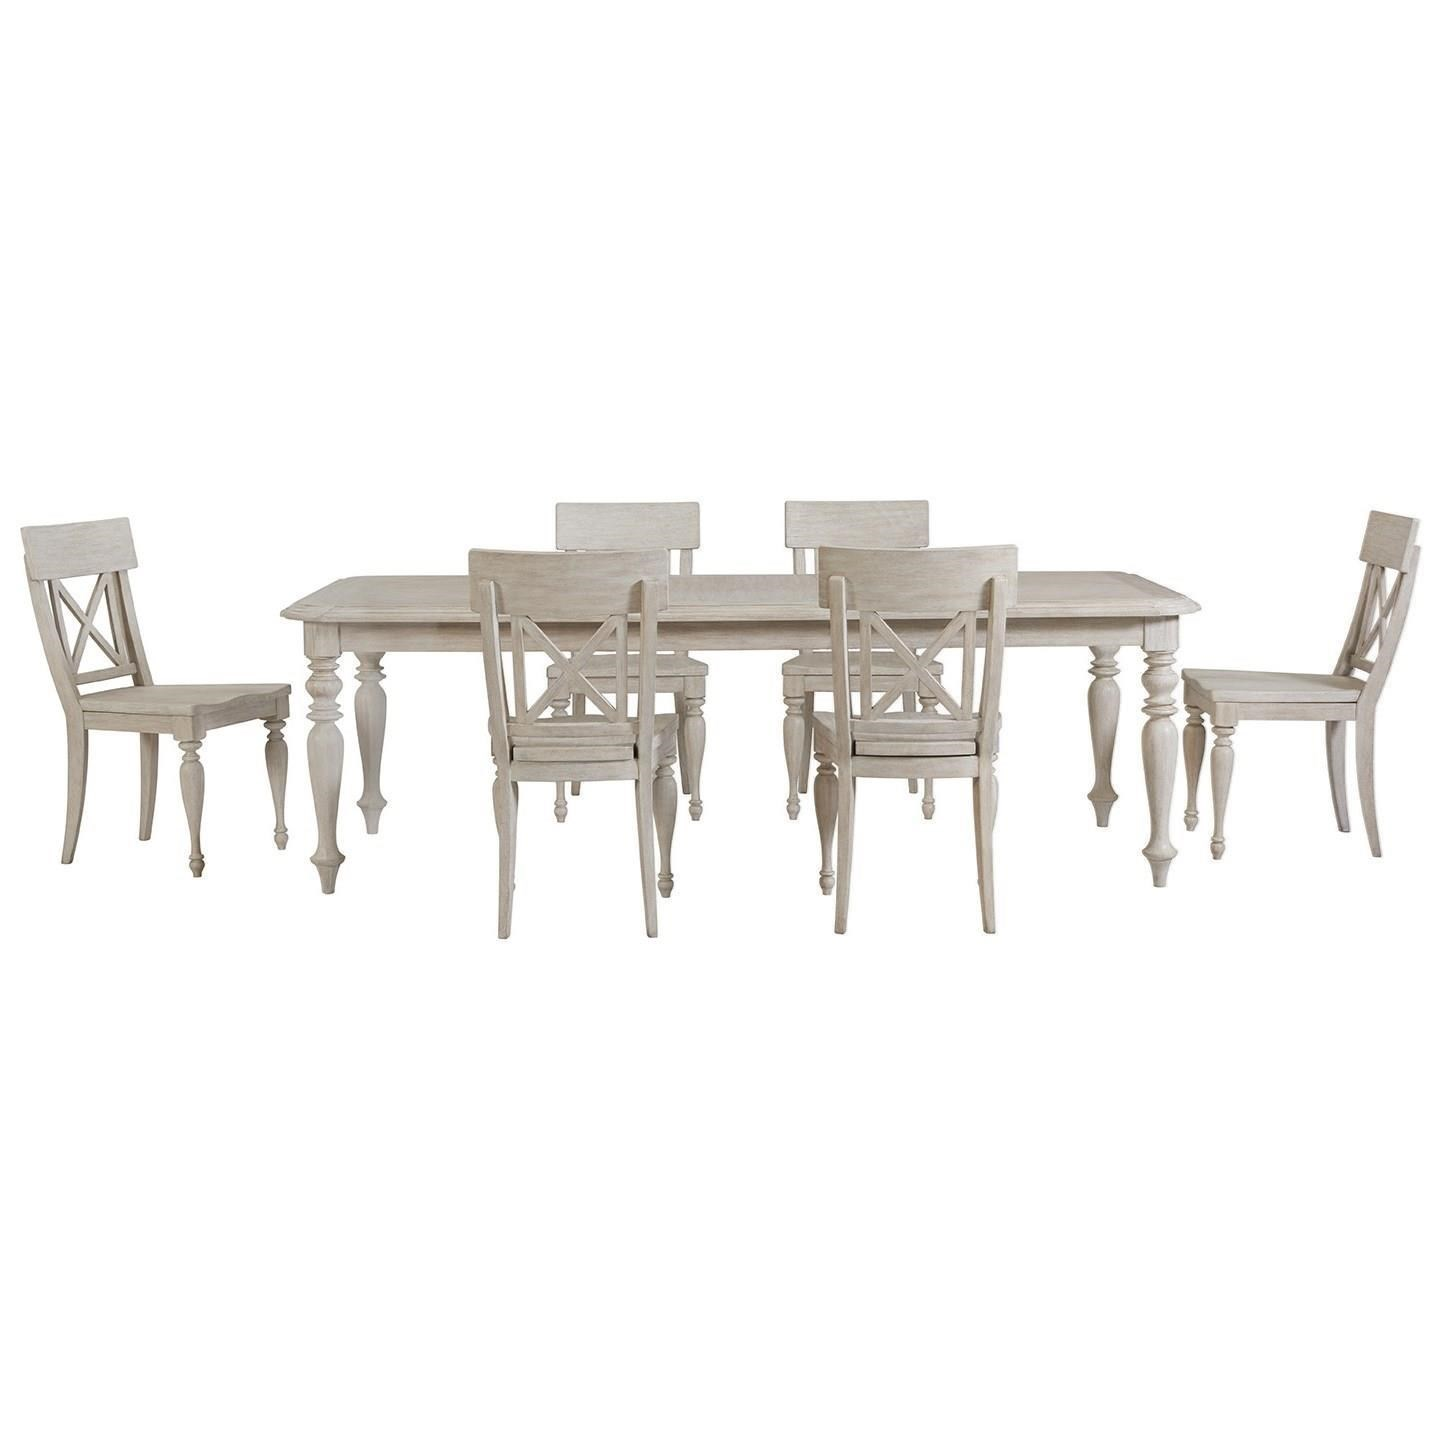 Groovy Charleston Retreat Cottage 7 Piece Dining Table And Chair Set By Riverside Furniture At Furniture Barn Beutiful Home Inspiration Truamahrainfo